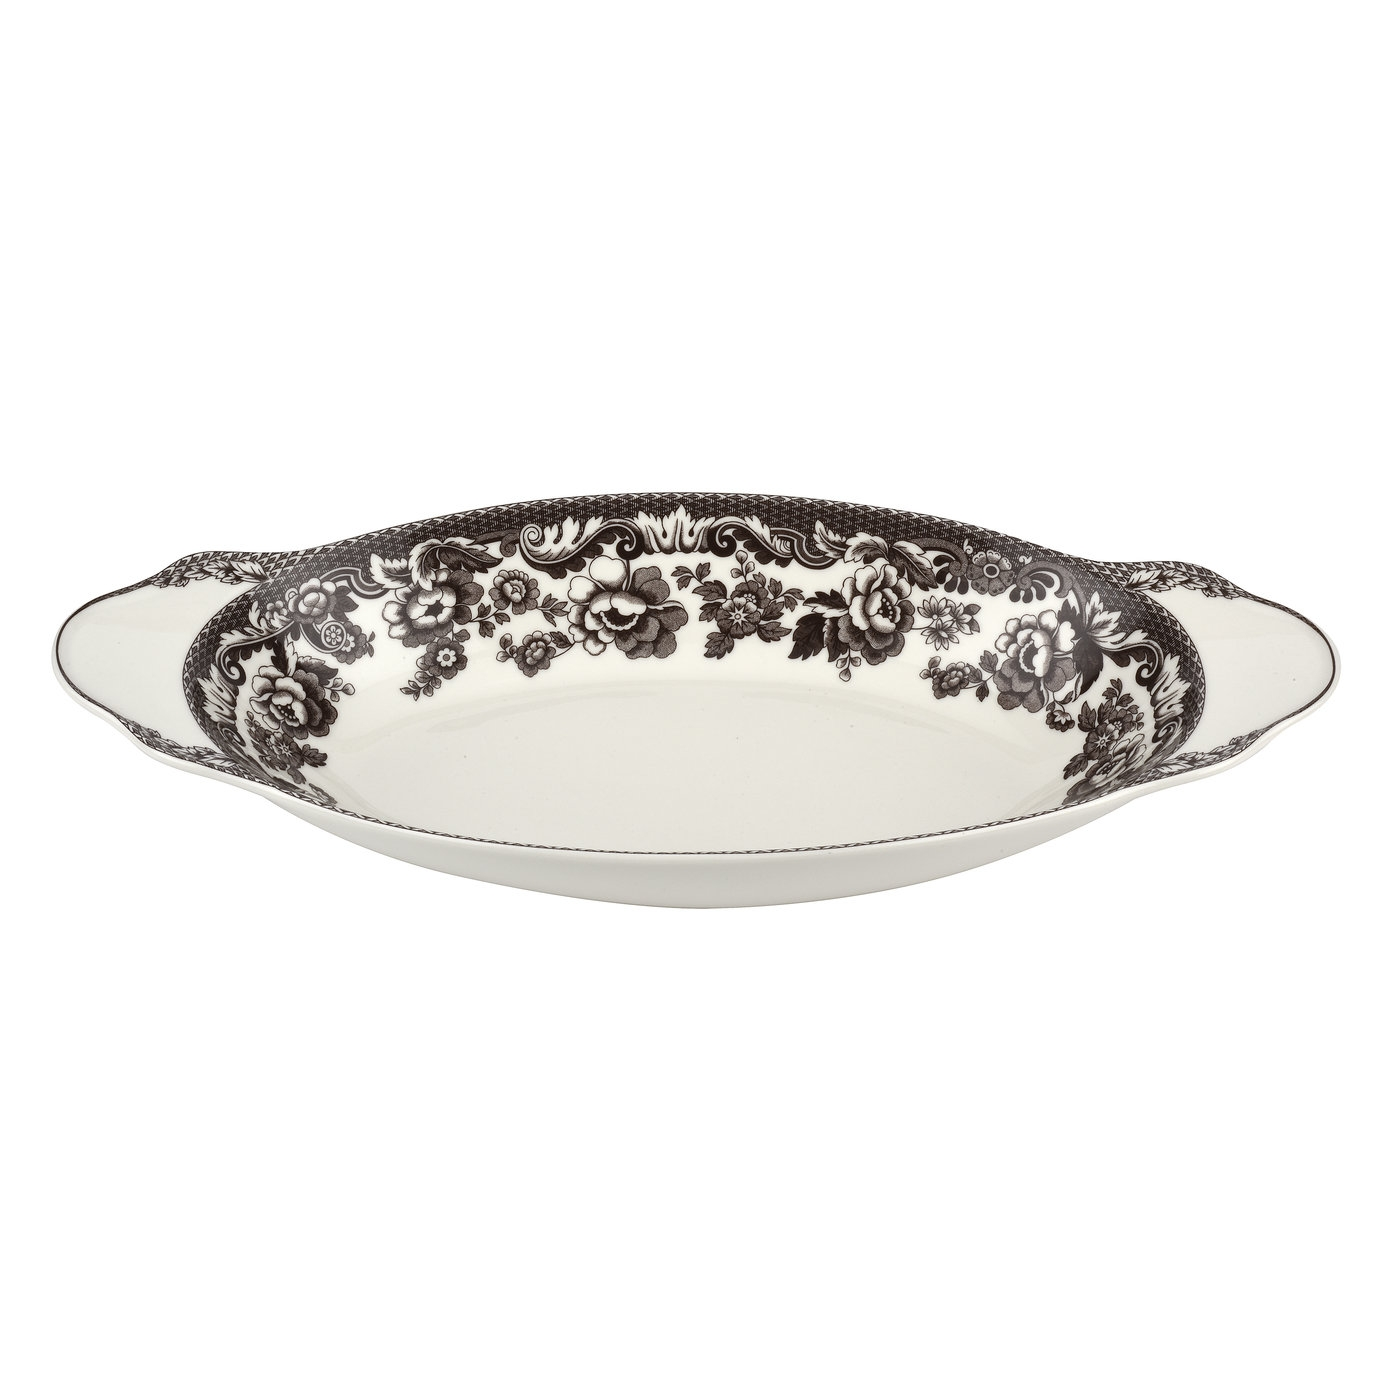 Spode Delamere Bread Tray 15.25 Inch image number 0